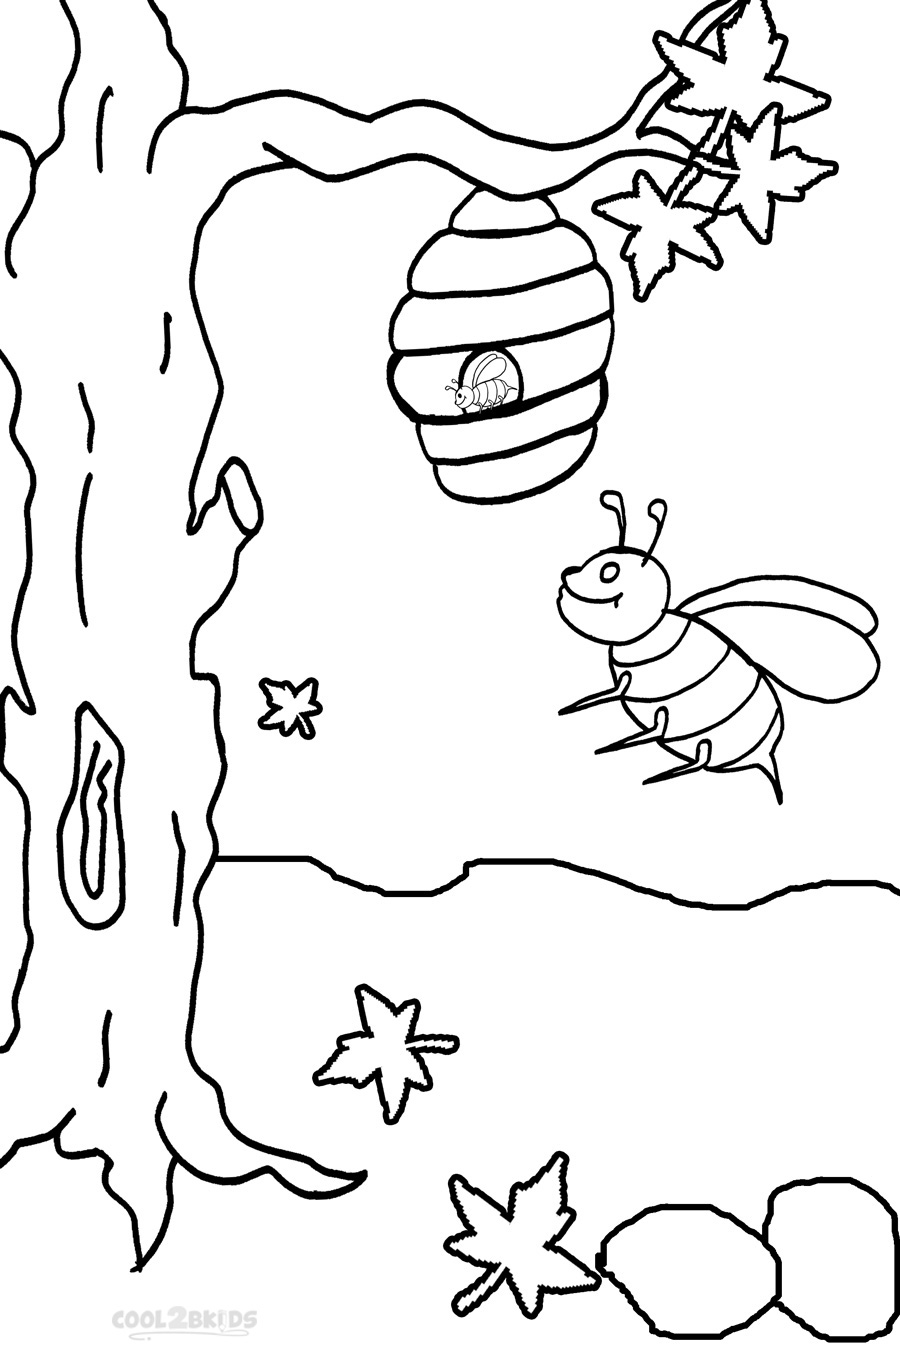 free bee coloring pages - photo#27